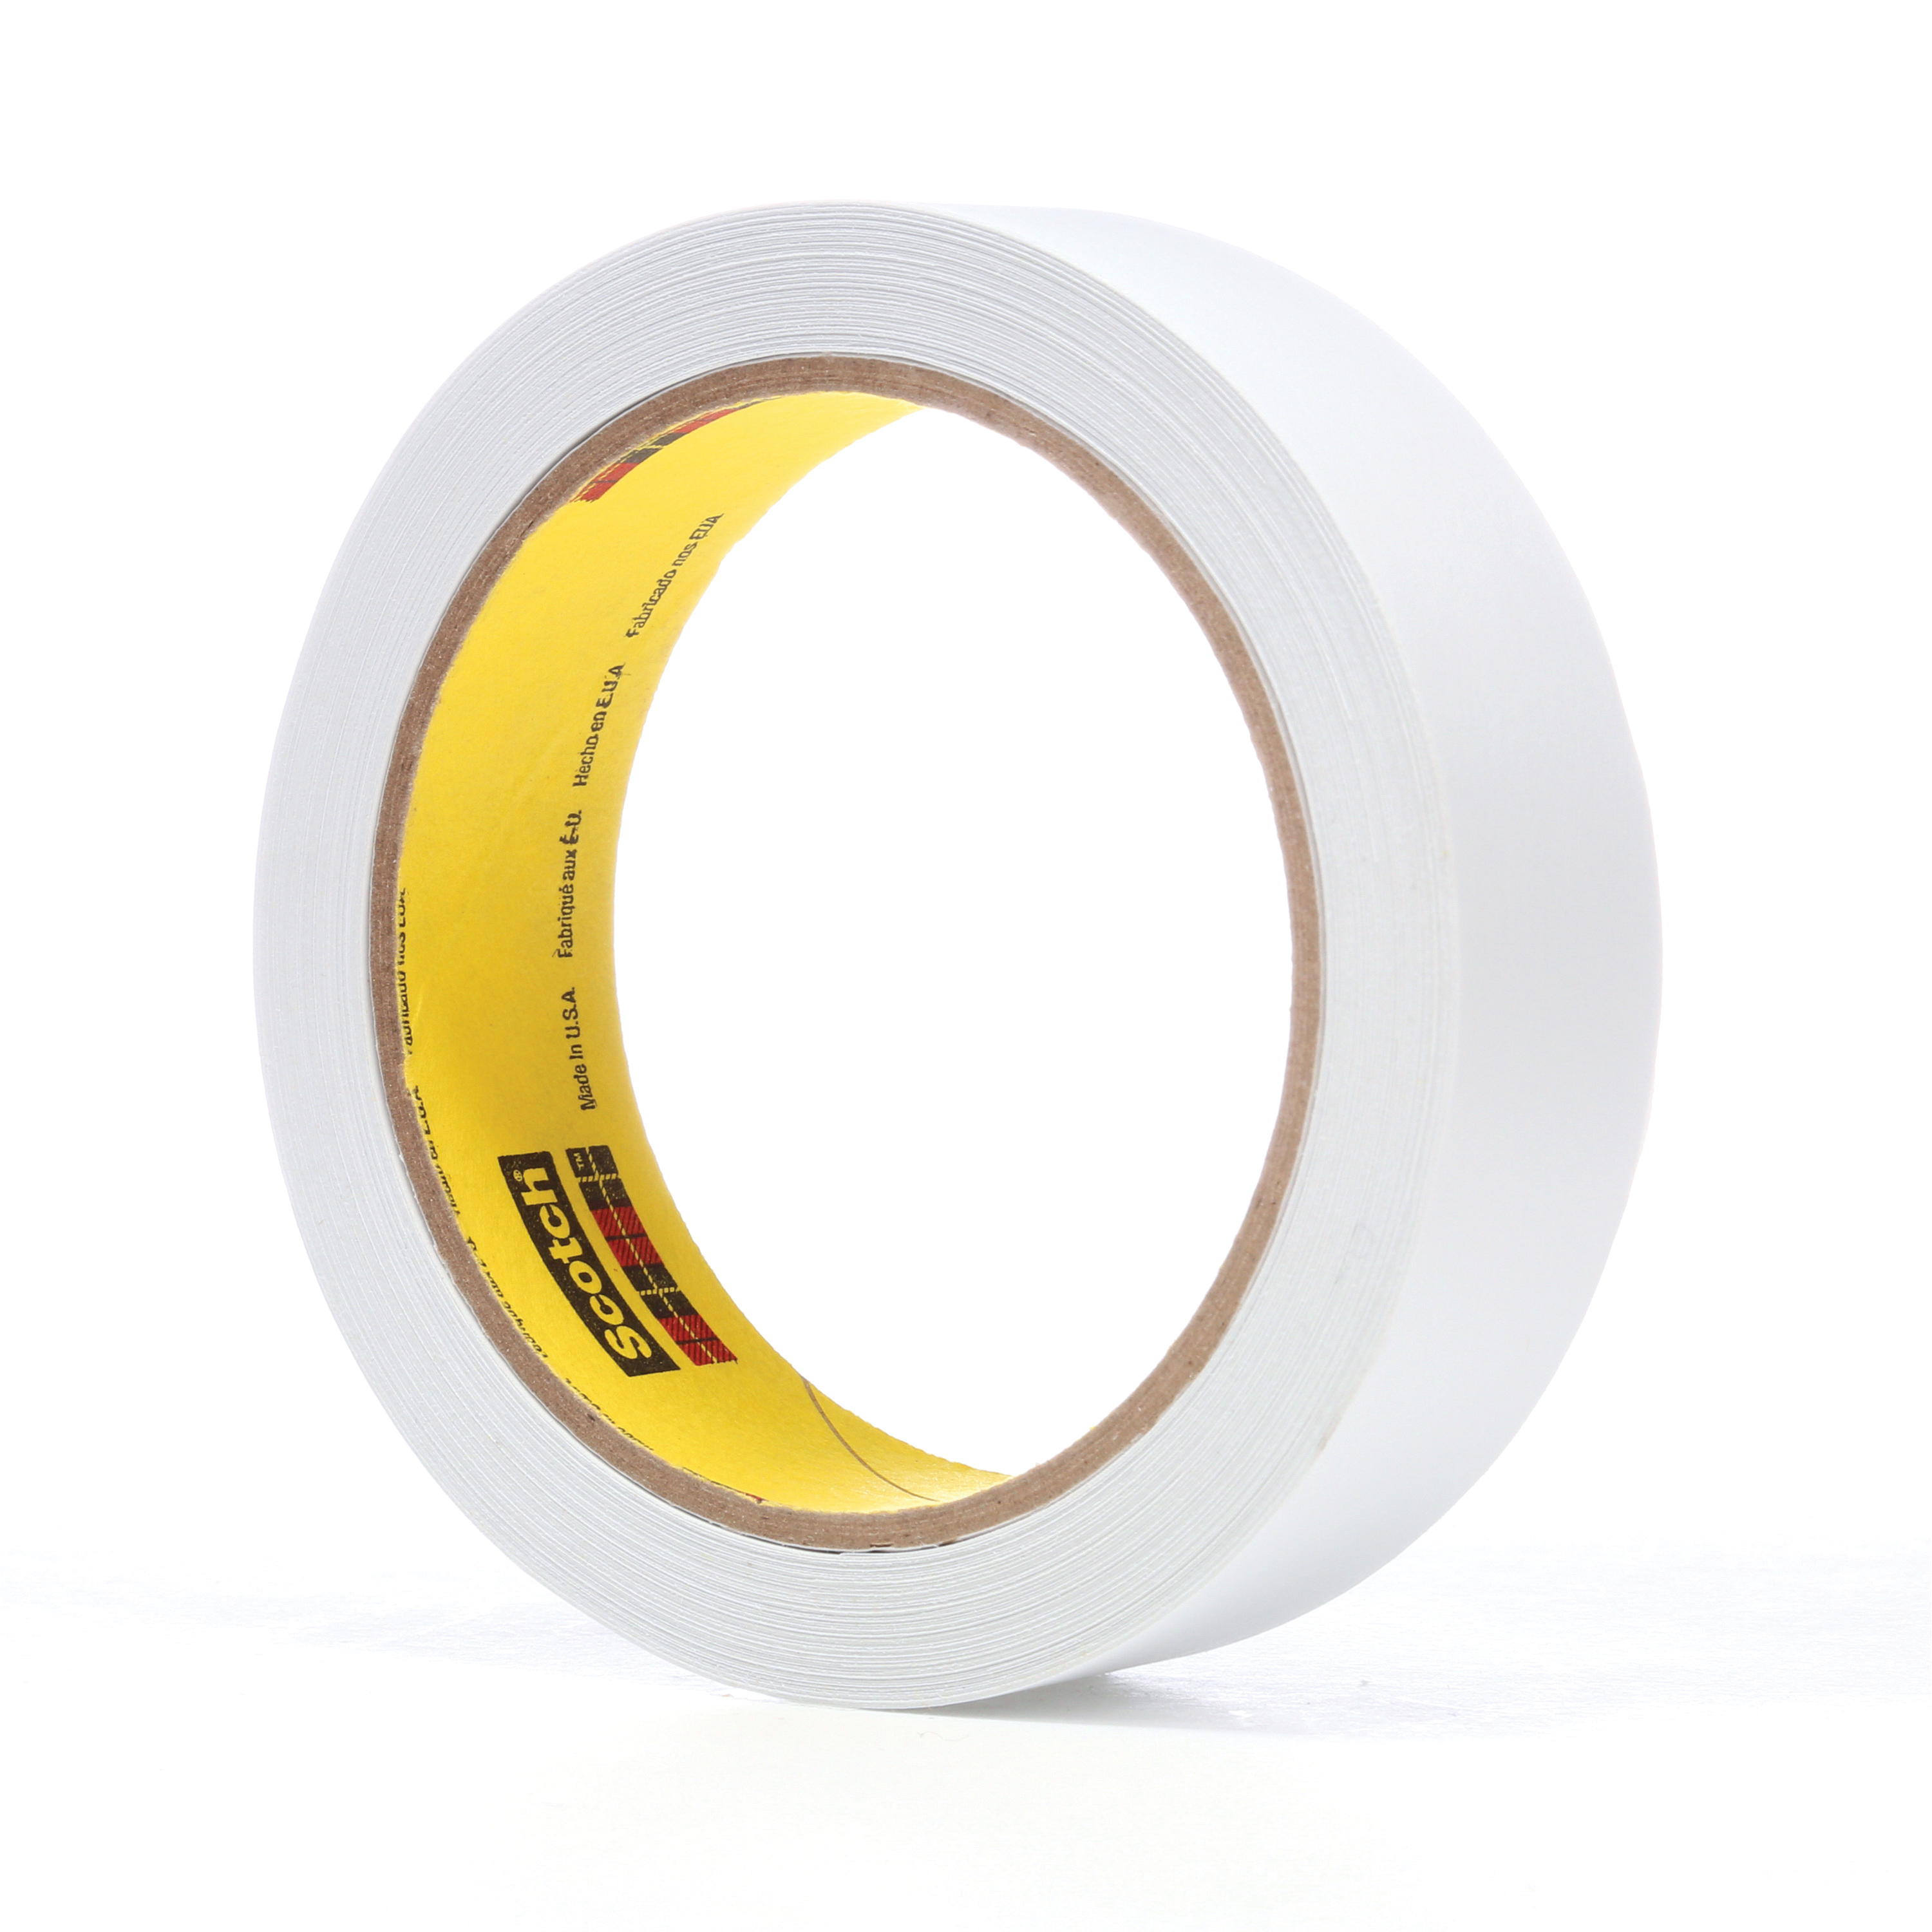 3M™ 021200-86009 3051 Low Tack Tape, 36 yd L x 1 in W, 3.8 mil THK, Acrylic Adhesive, Flatback Paper Backing